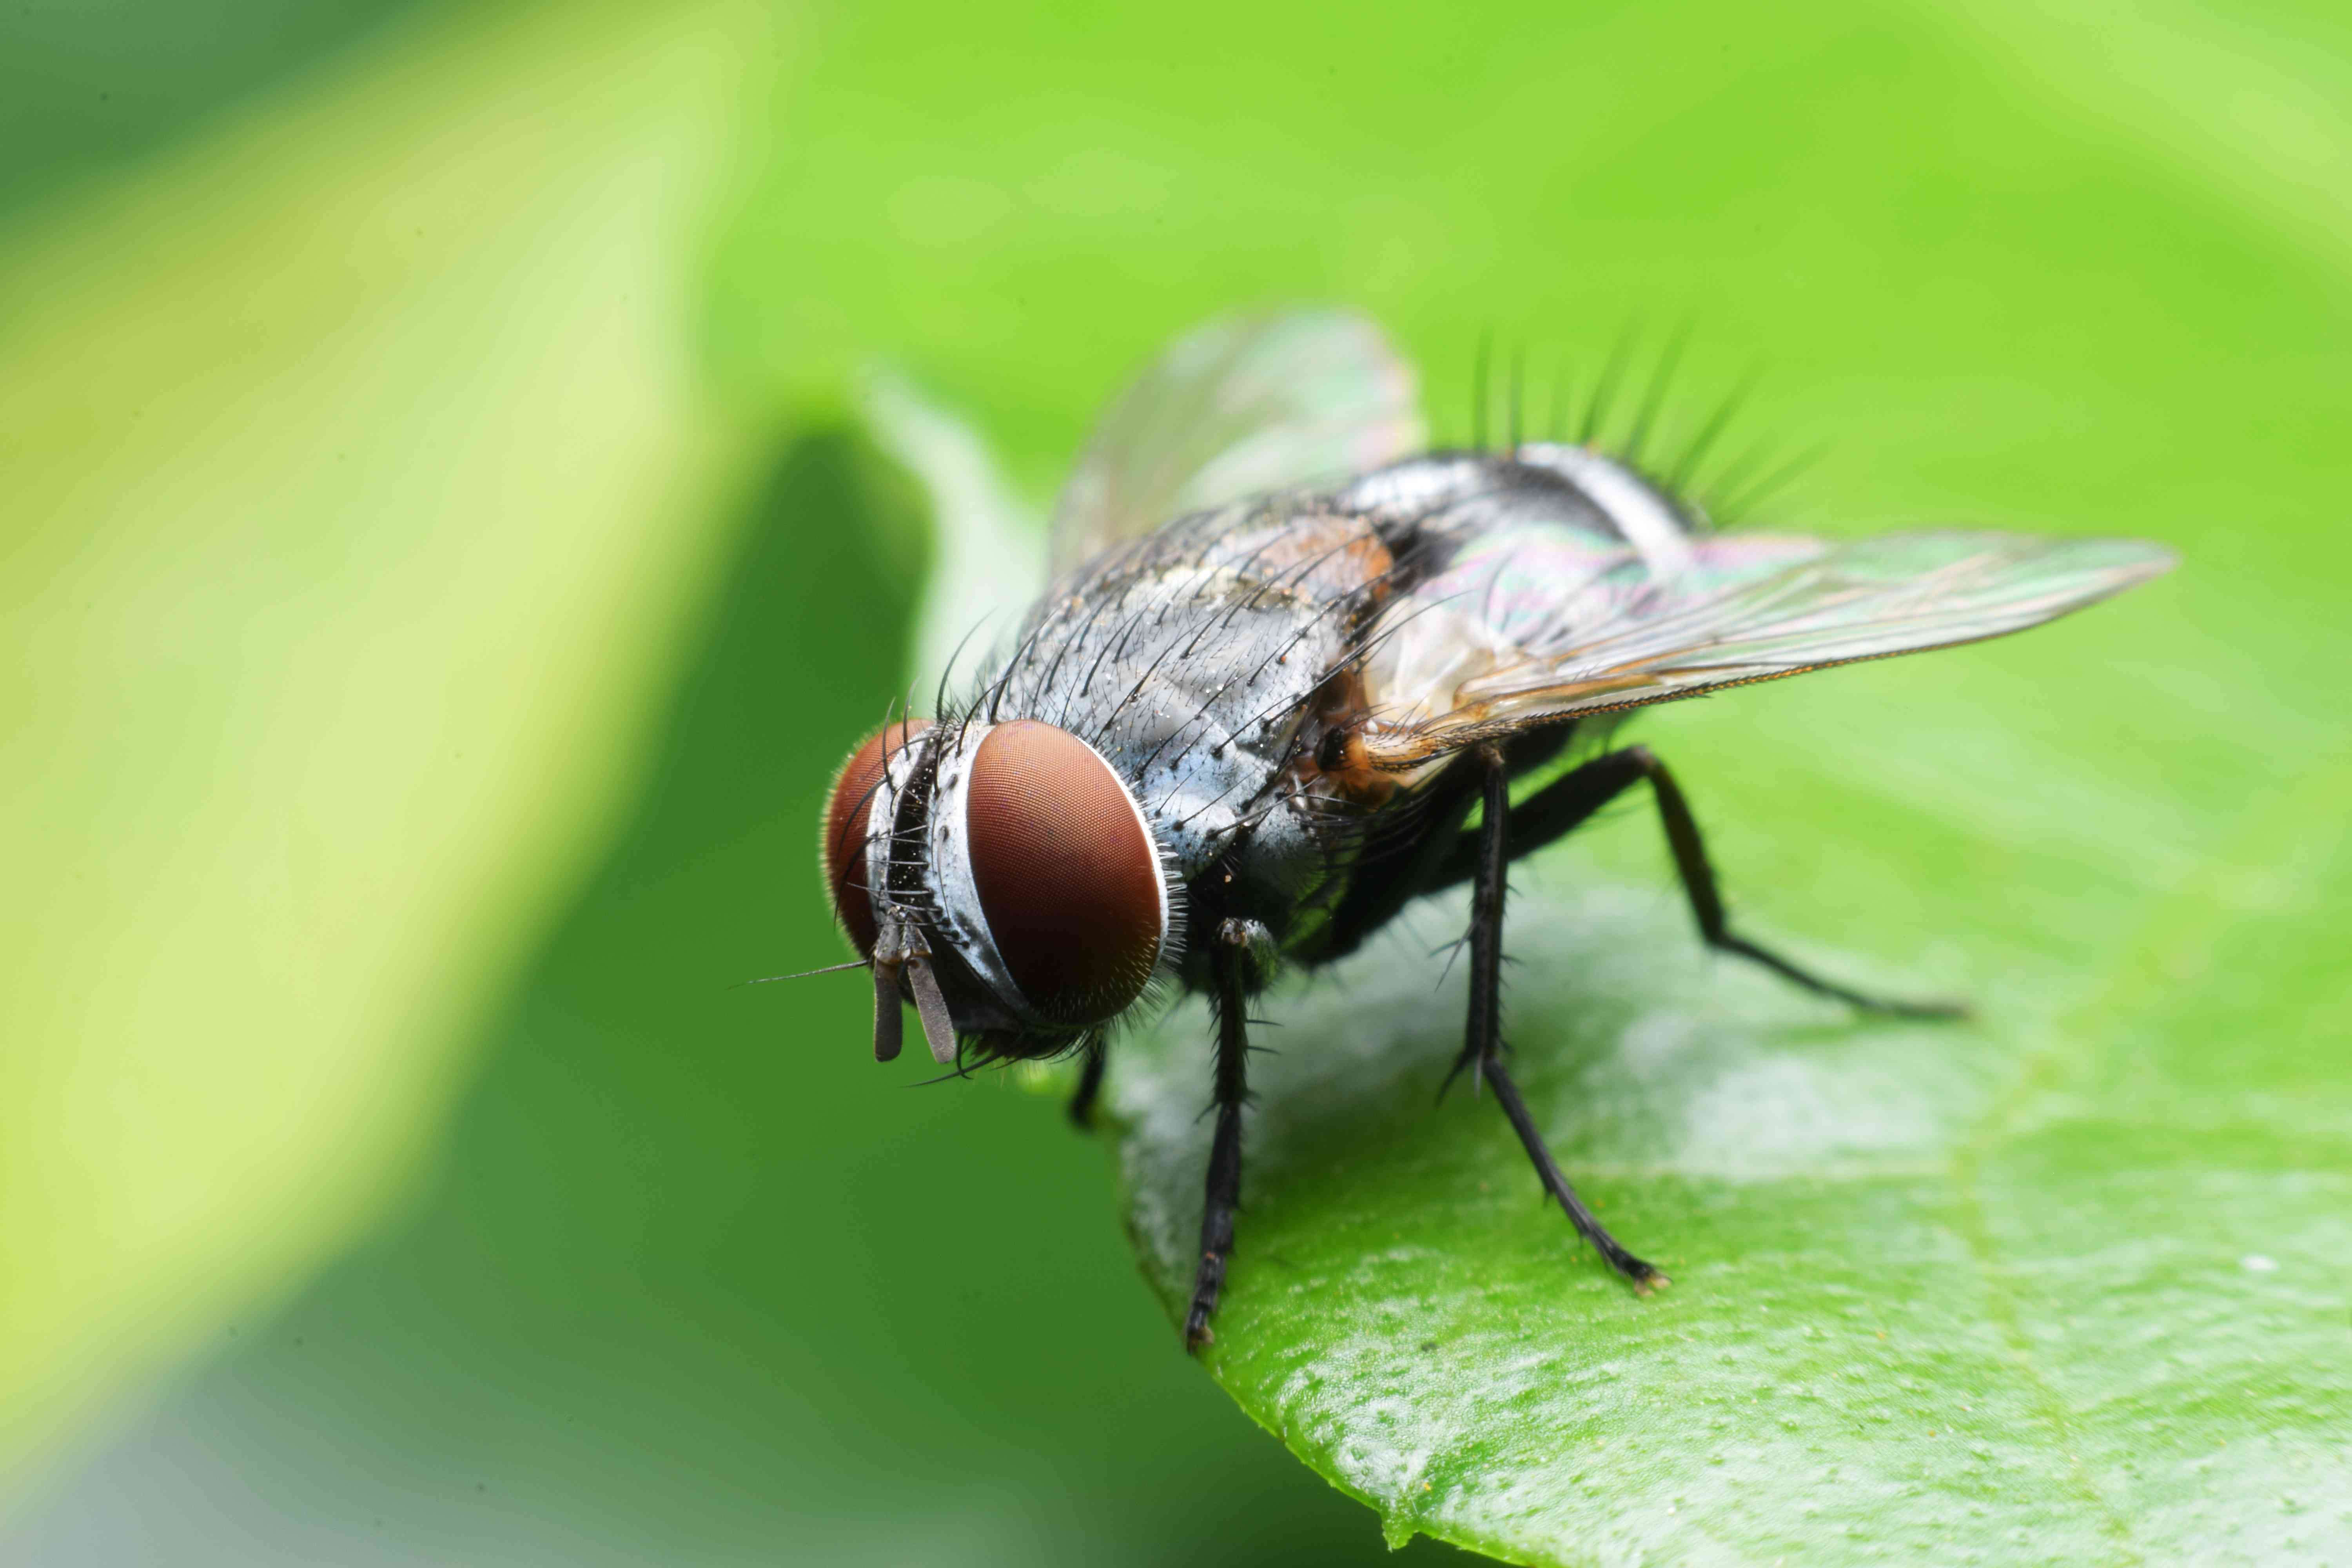 Flies are important pollinators, as are their larvae.